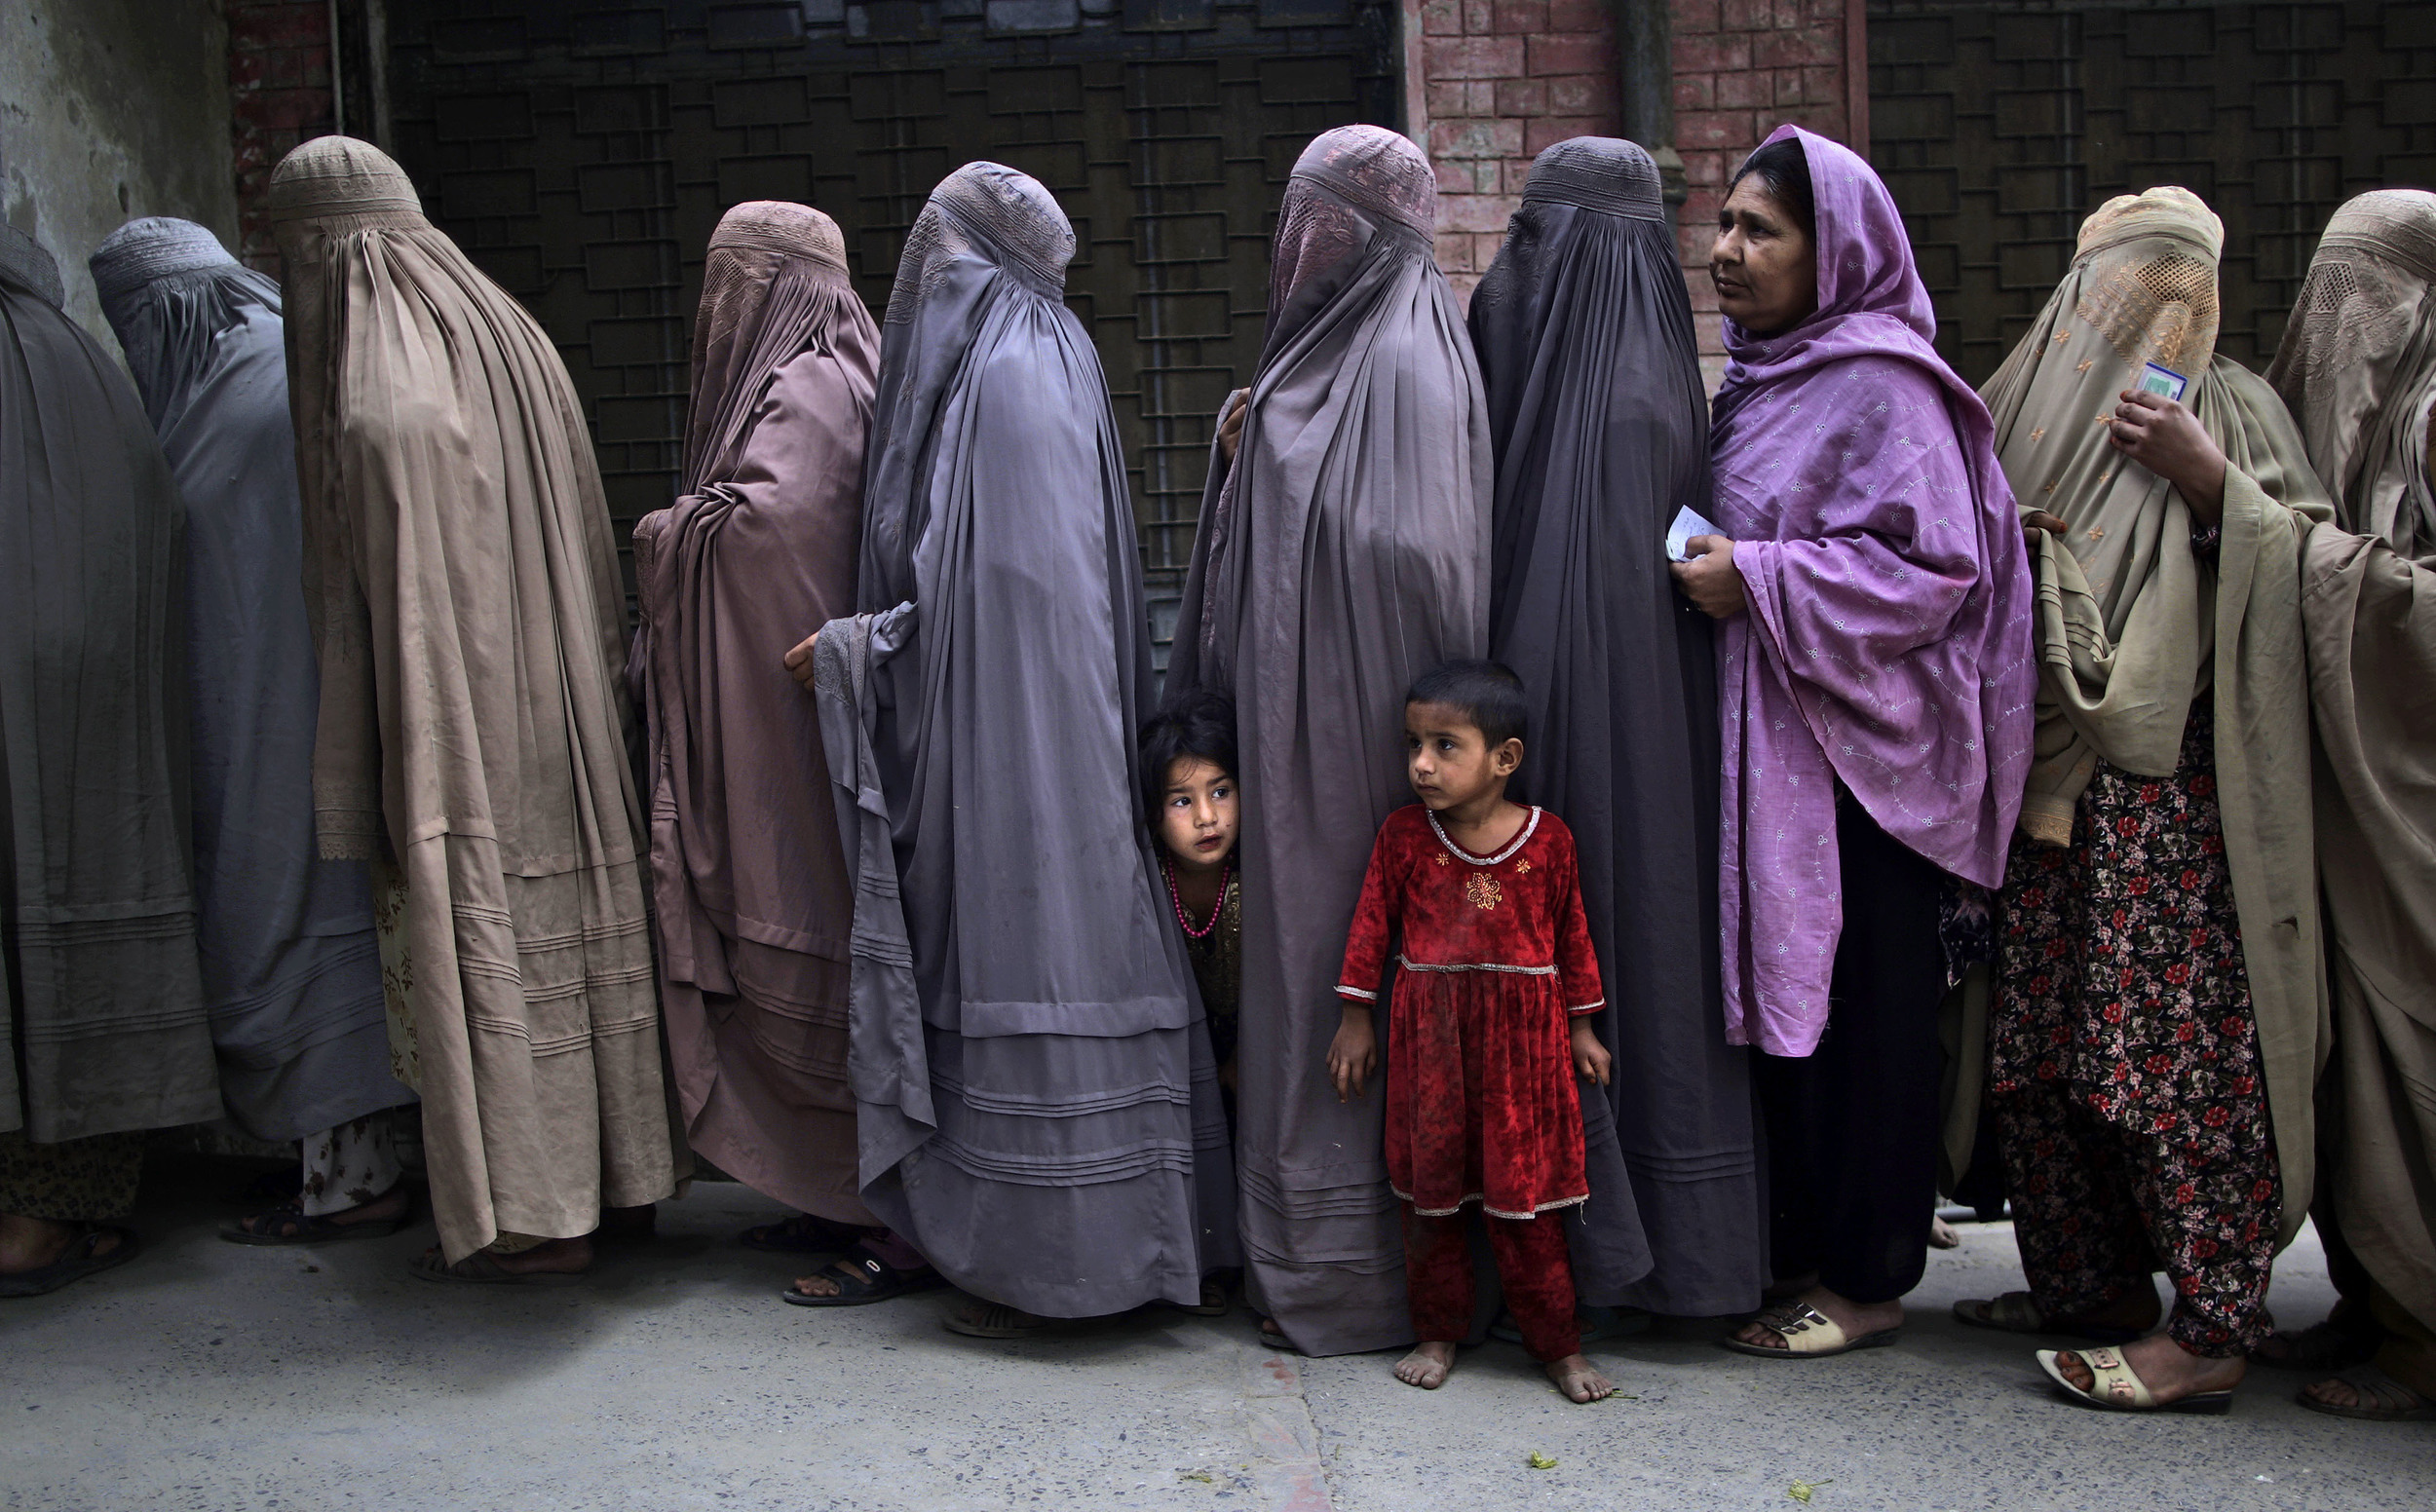 Pakistani woman line up to enter the polling station outside Islamabad, Pakistan (photo credit: AP)